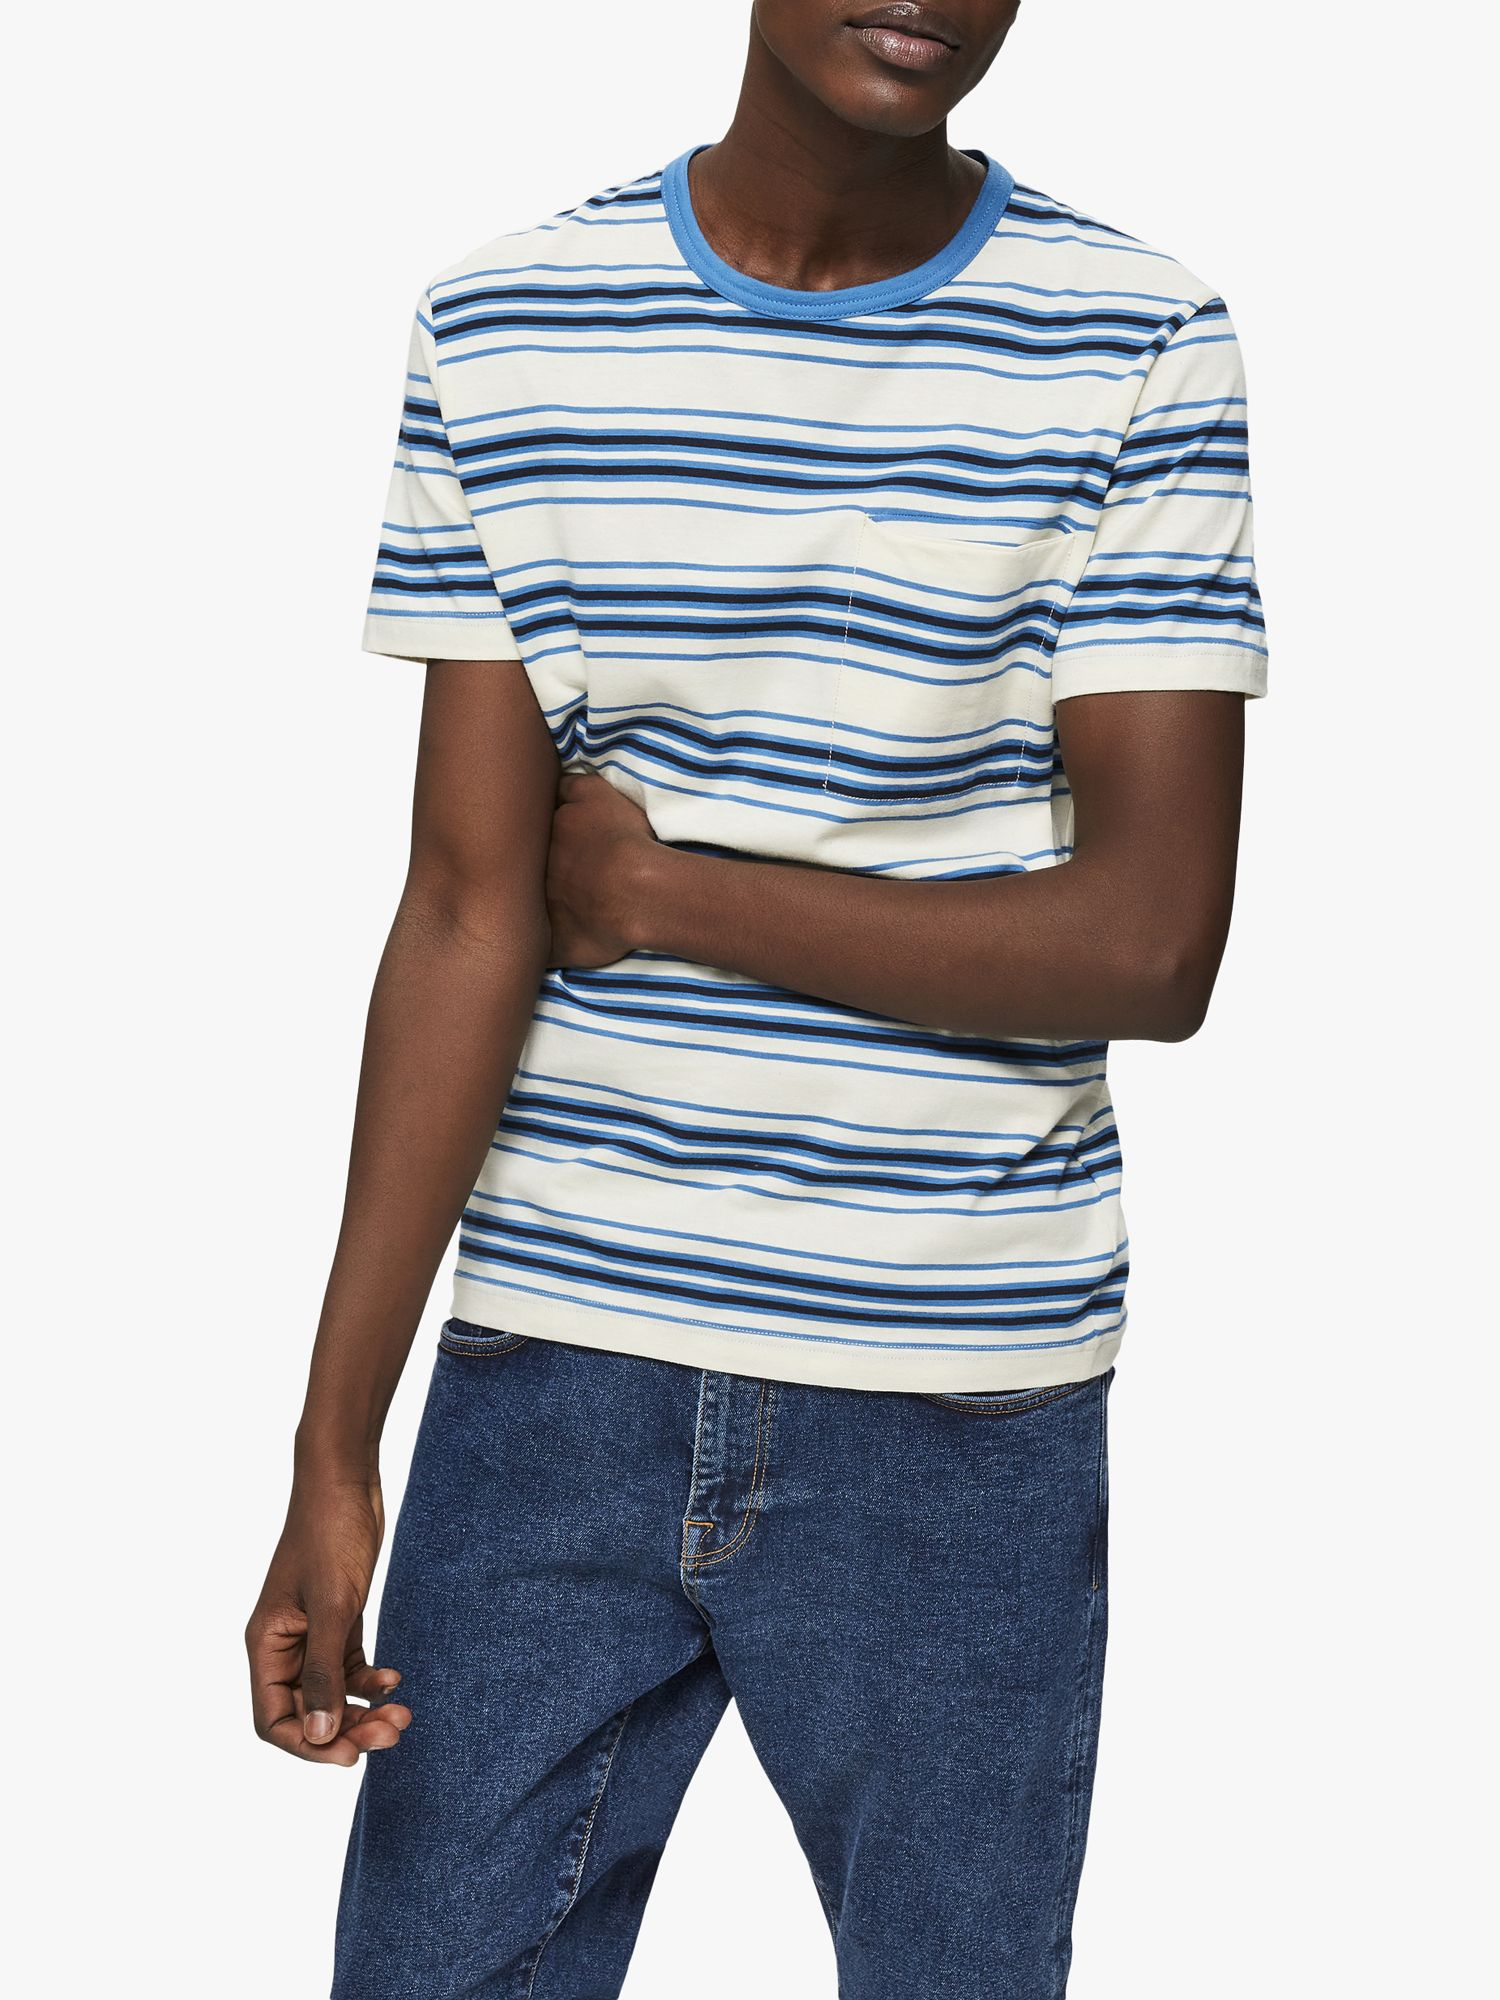 Selected Homme SELECTED HOMME Short Sleeve Pocket T-Shirt, White/Blue Stripe